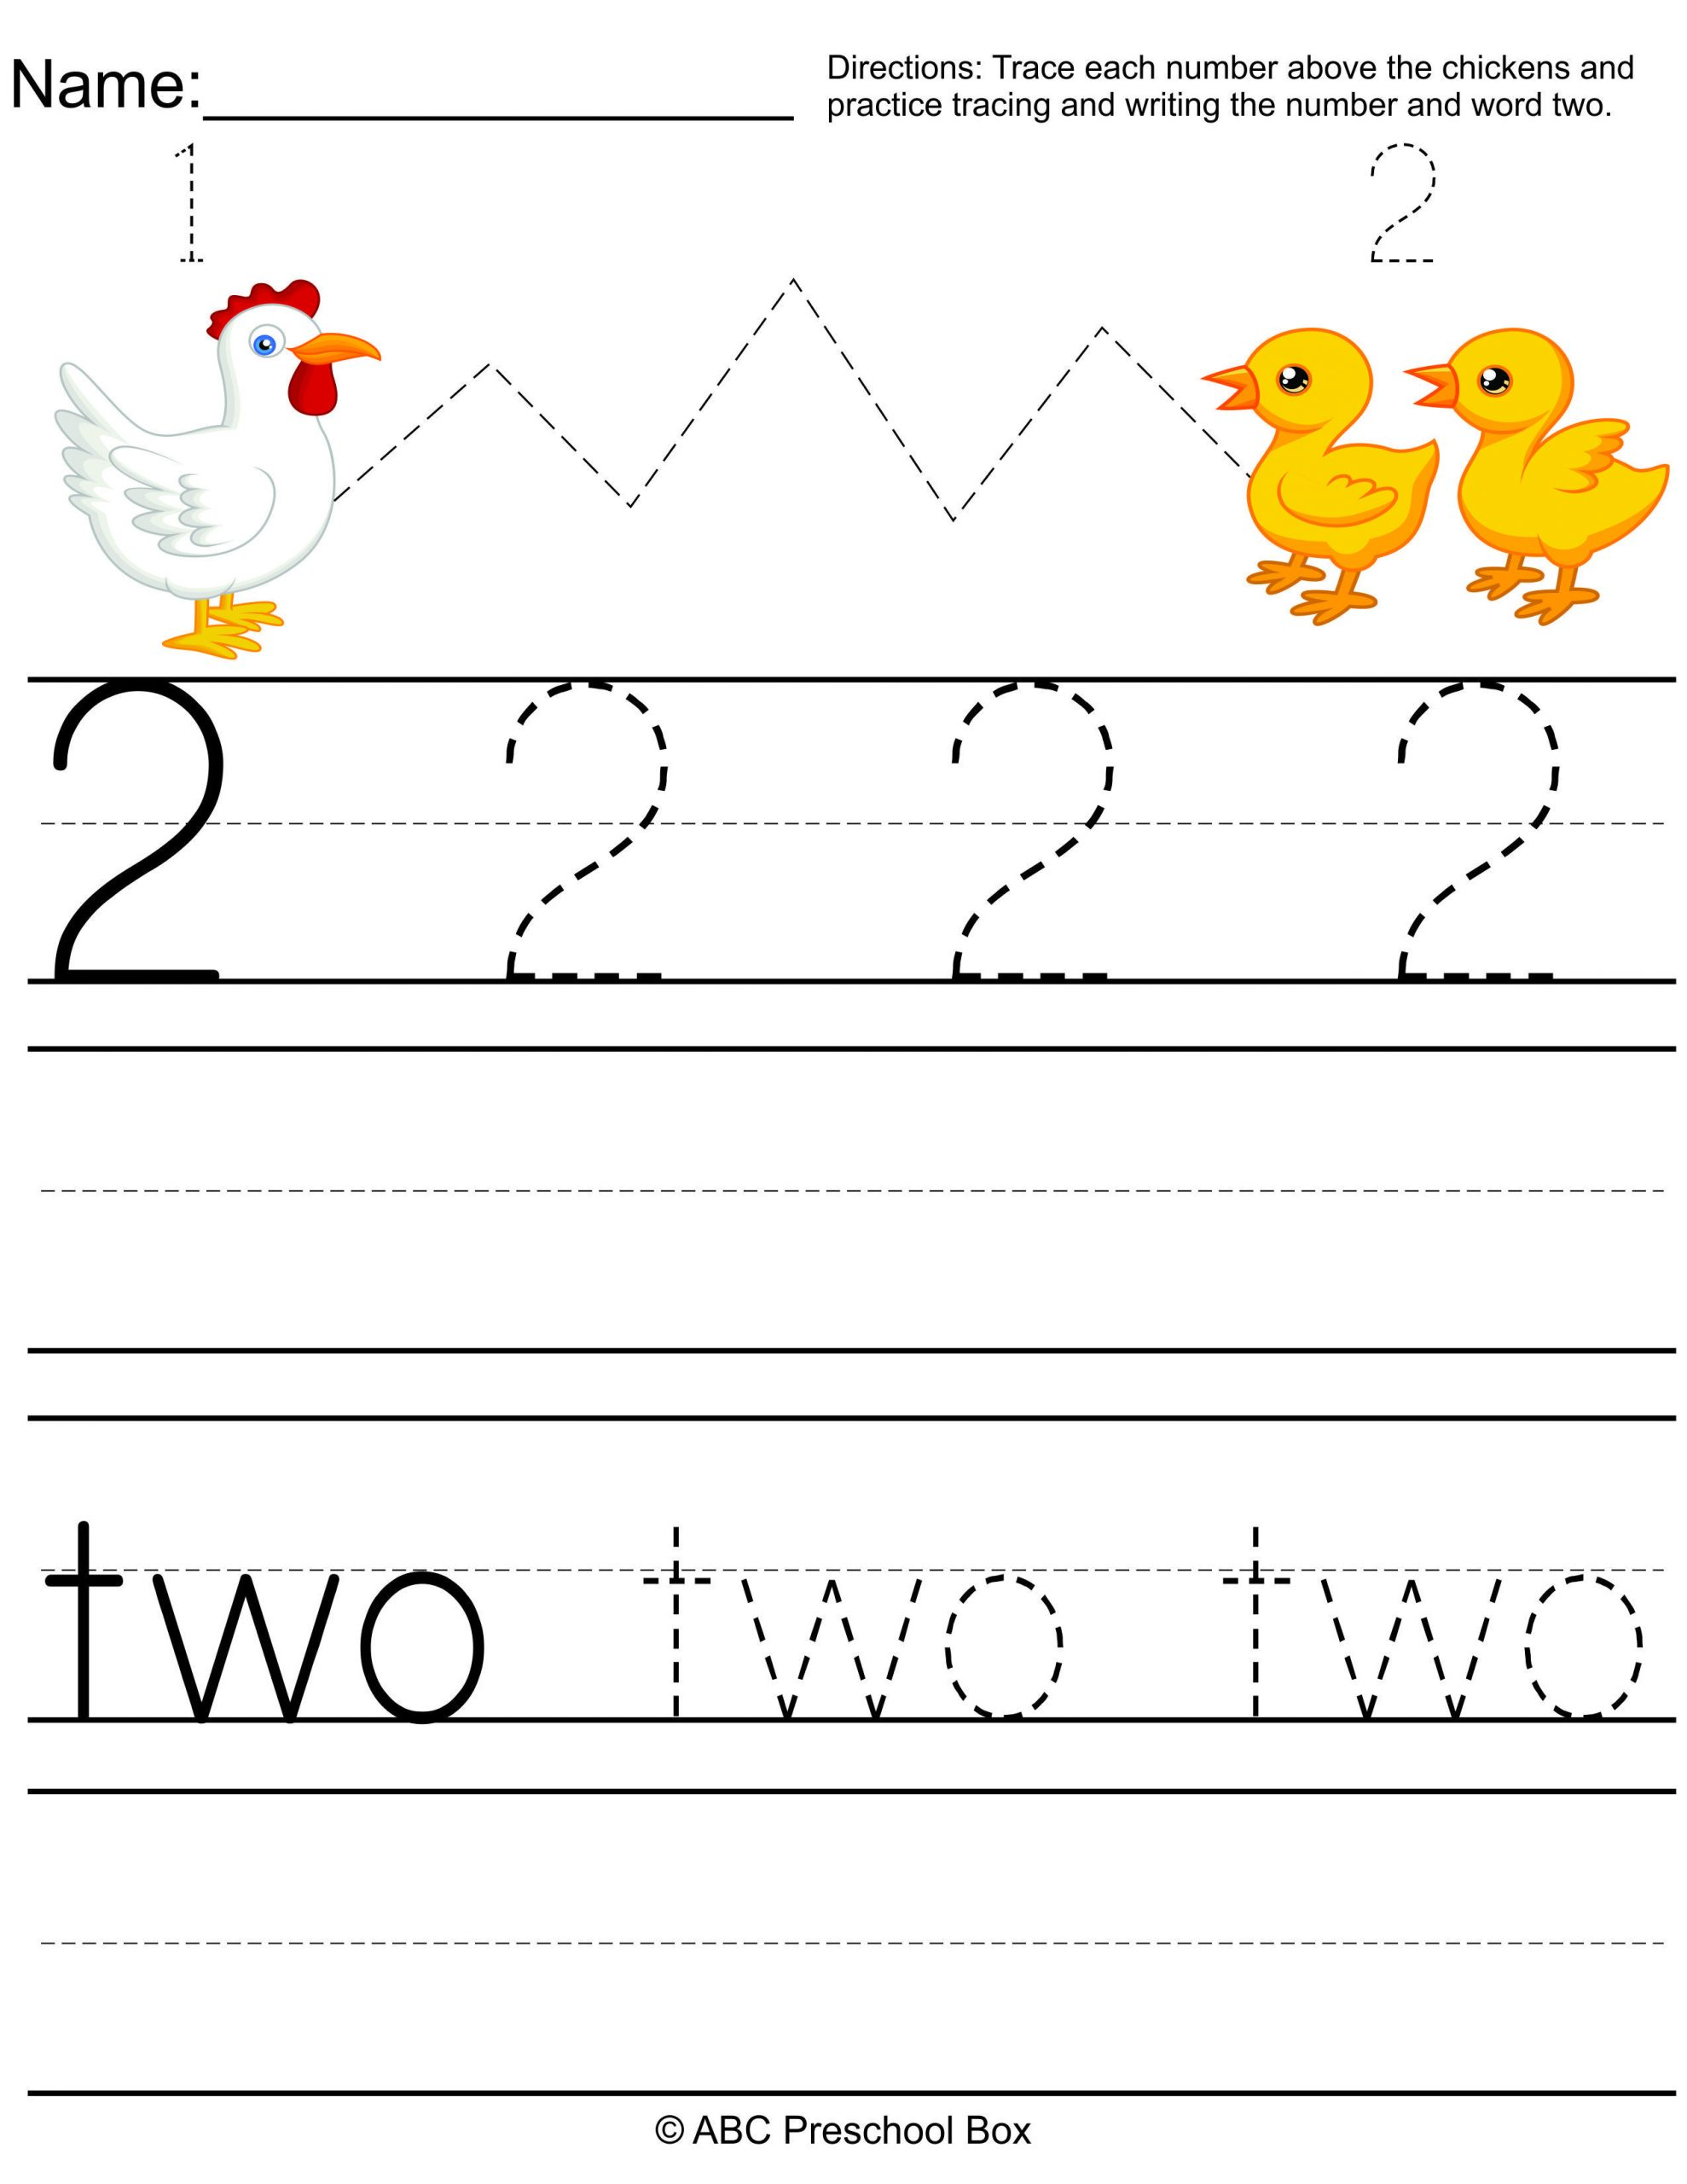 Number 2 Worksheets for Preschool Number 2 Preschool Worksheet From Abcpreschoolbox